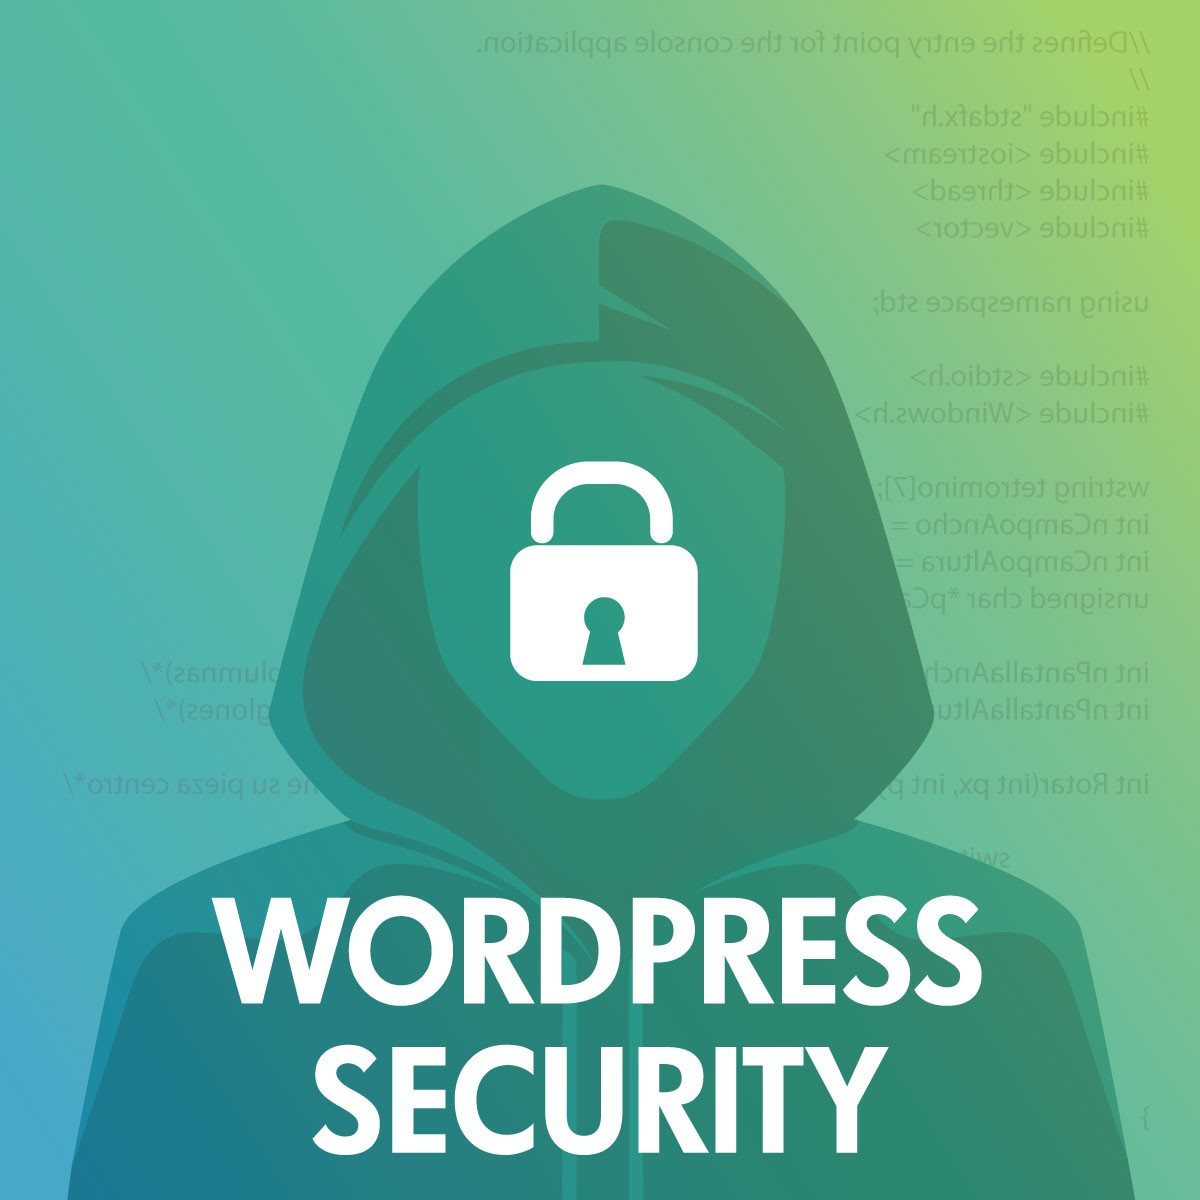 MMIC.net - Your Web Partner for WordPress Security